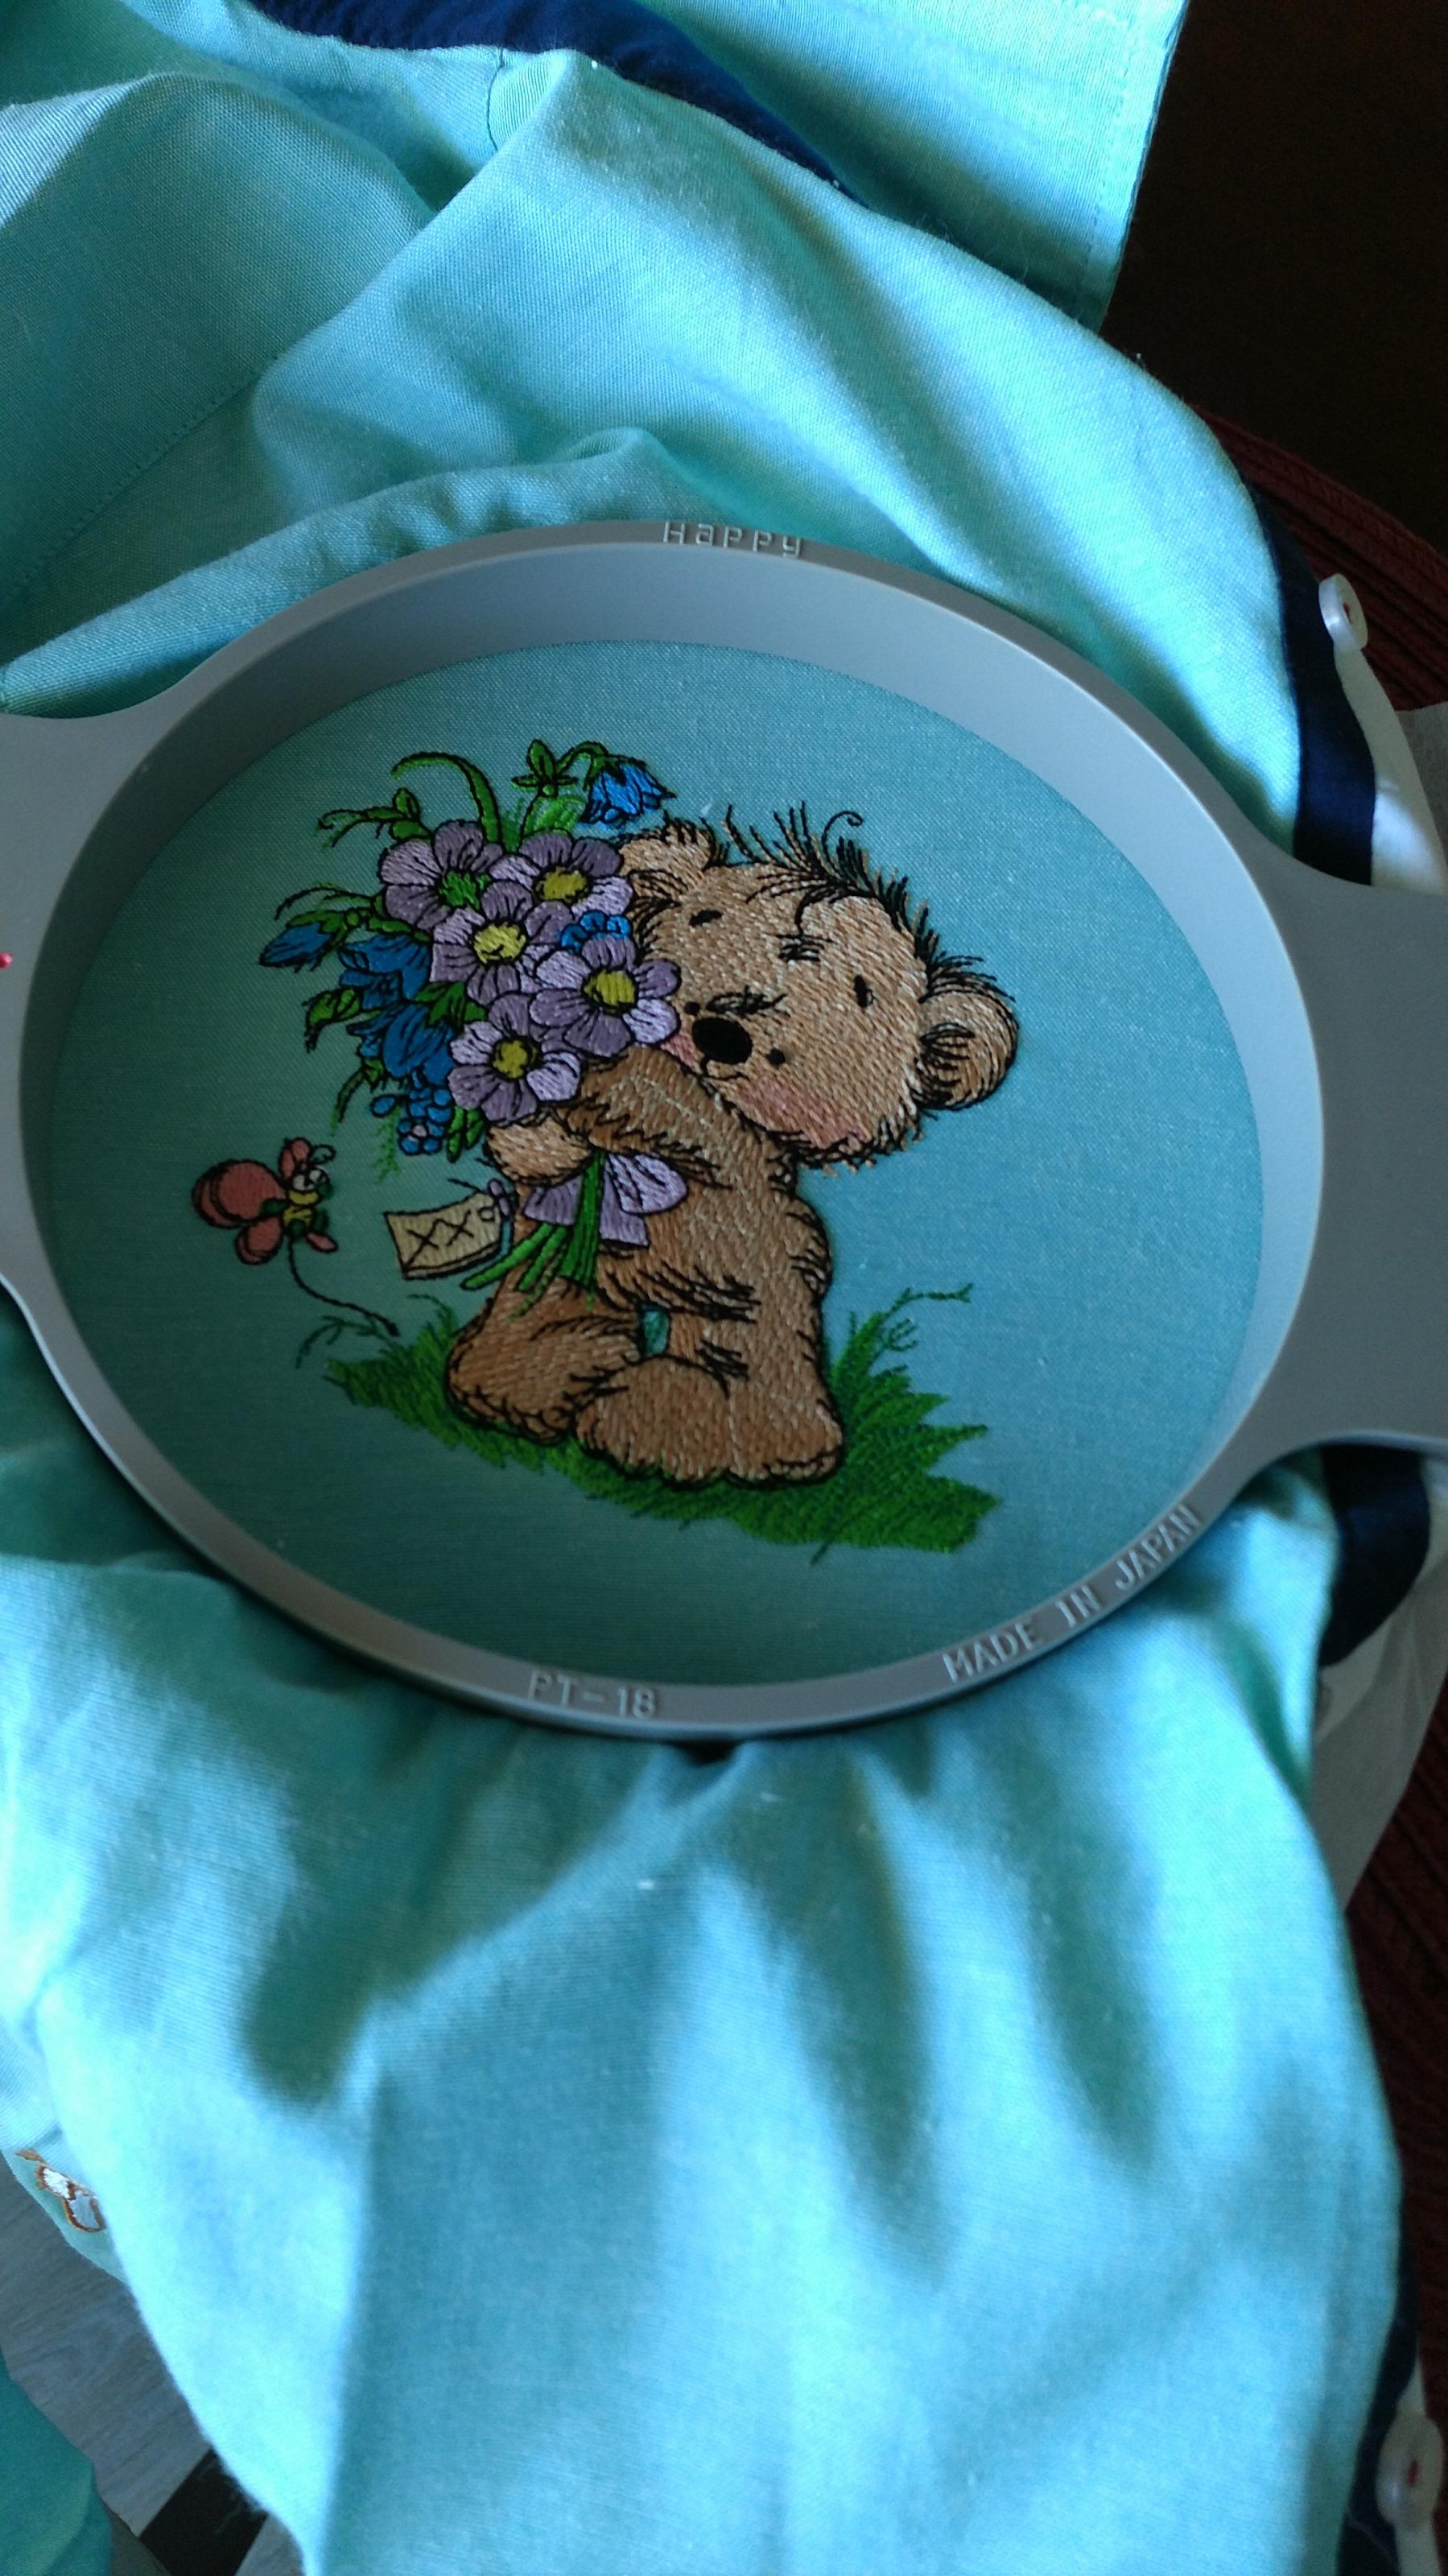 Finished cute teddy bear with flowers embroidery design